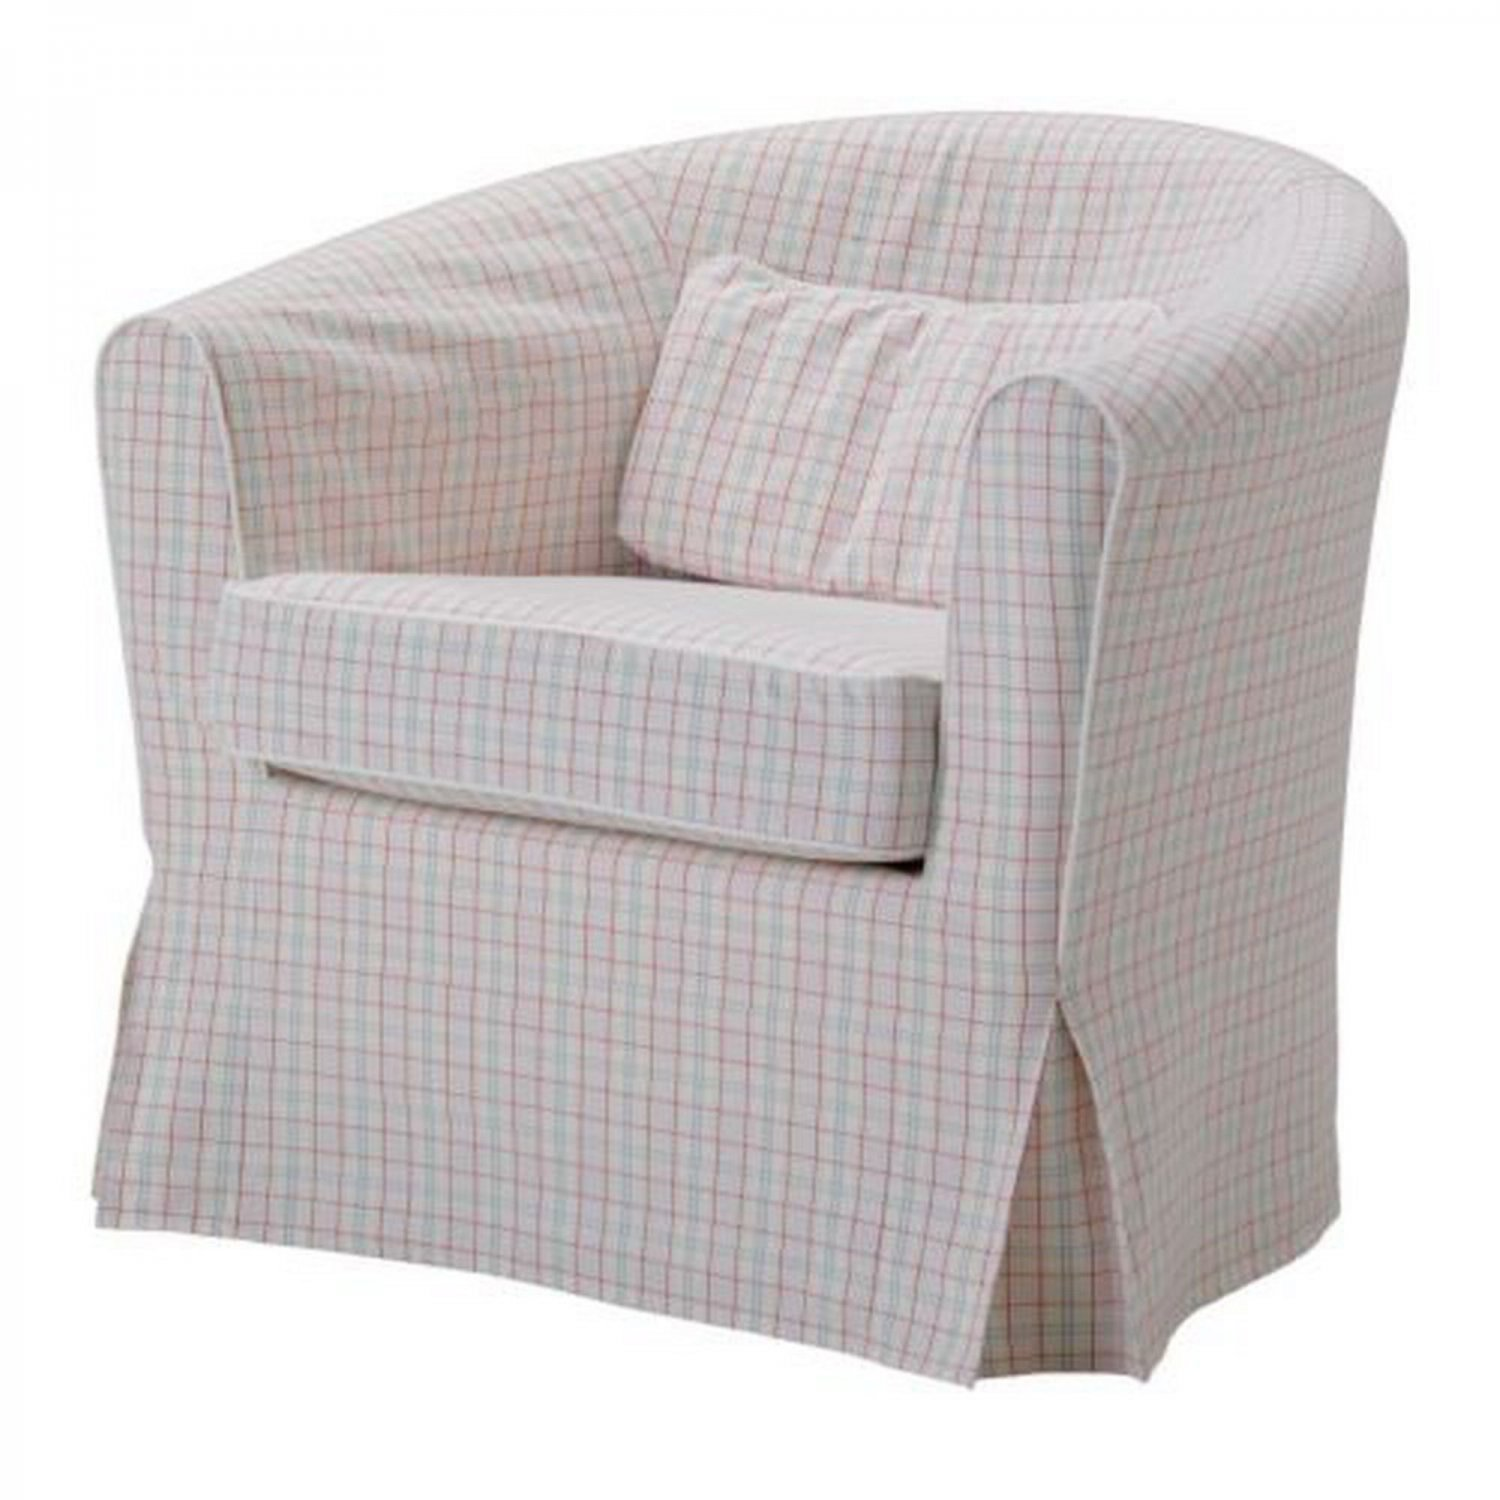 Ikea ektorp tullsta armchair slipcover chair cover ruda for Ikea tullsta